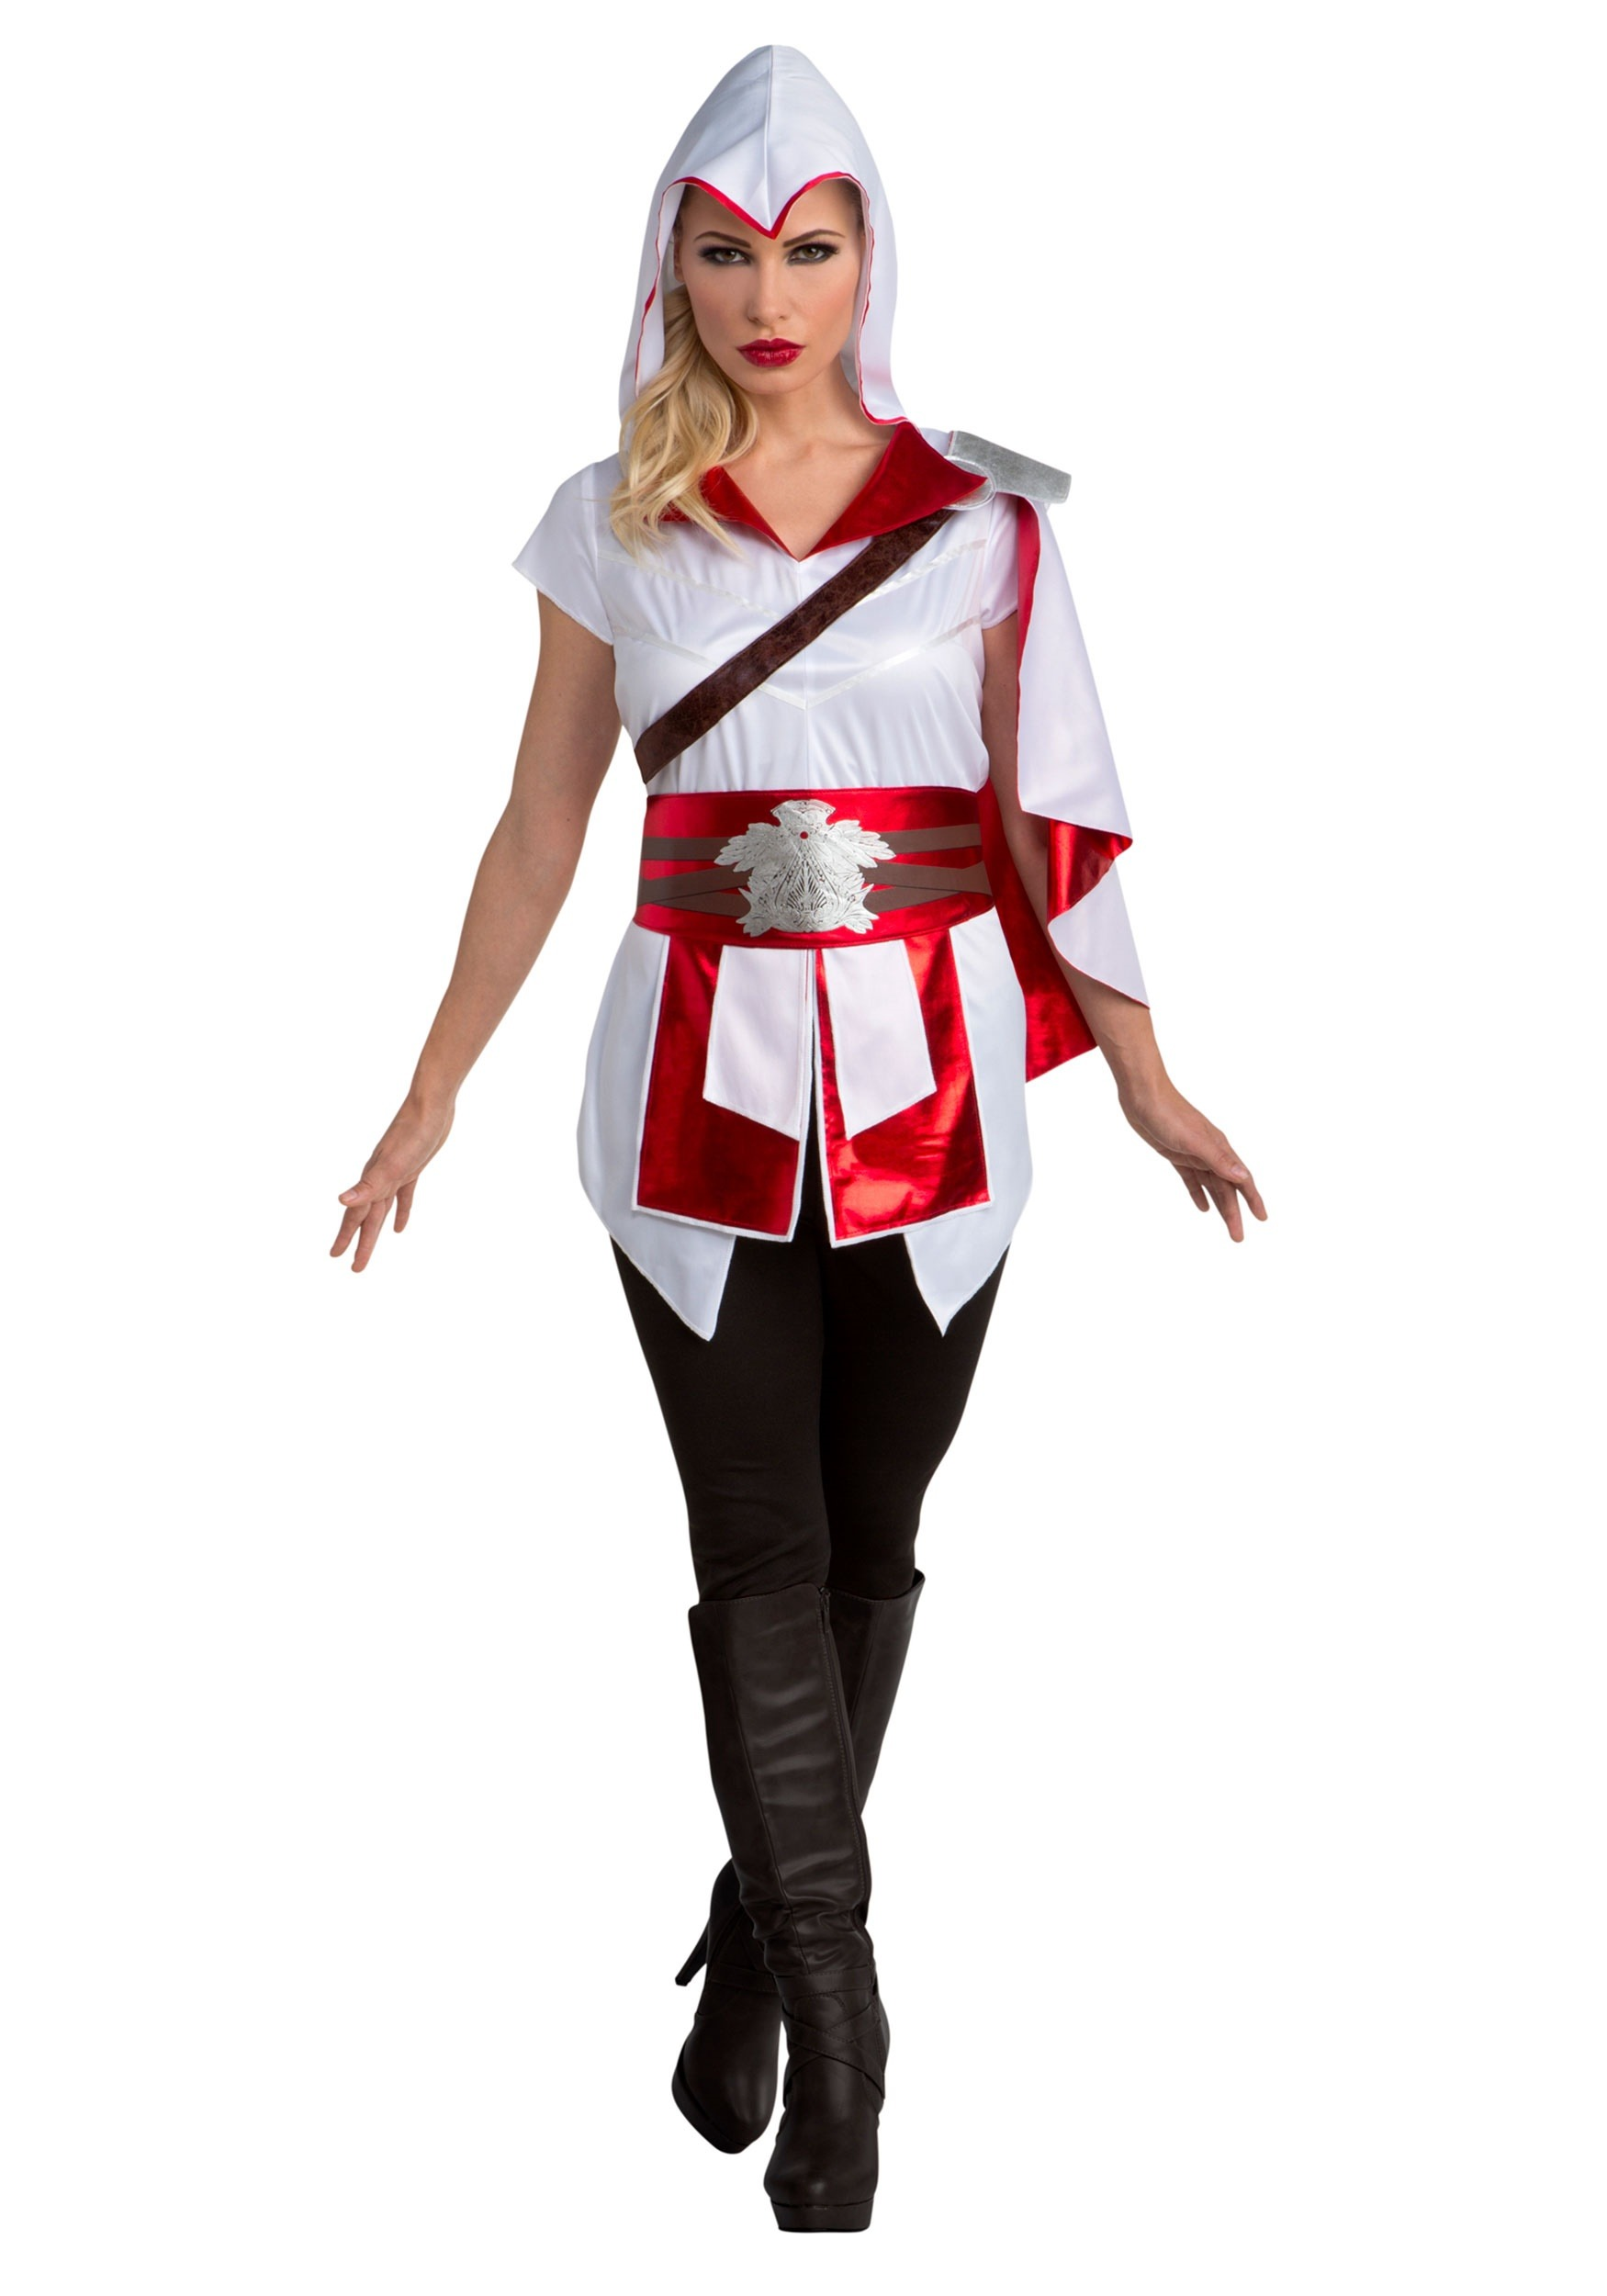 INOpets.com Anything for Pets Parents & Their Pets Assassin's Creed II Ezio Fancy Dress Costume for Women